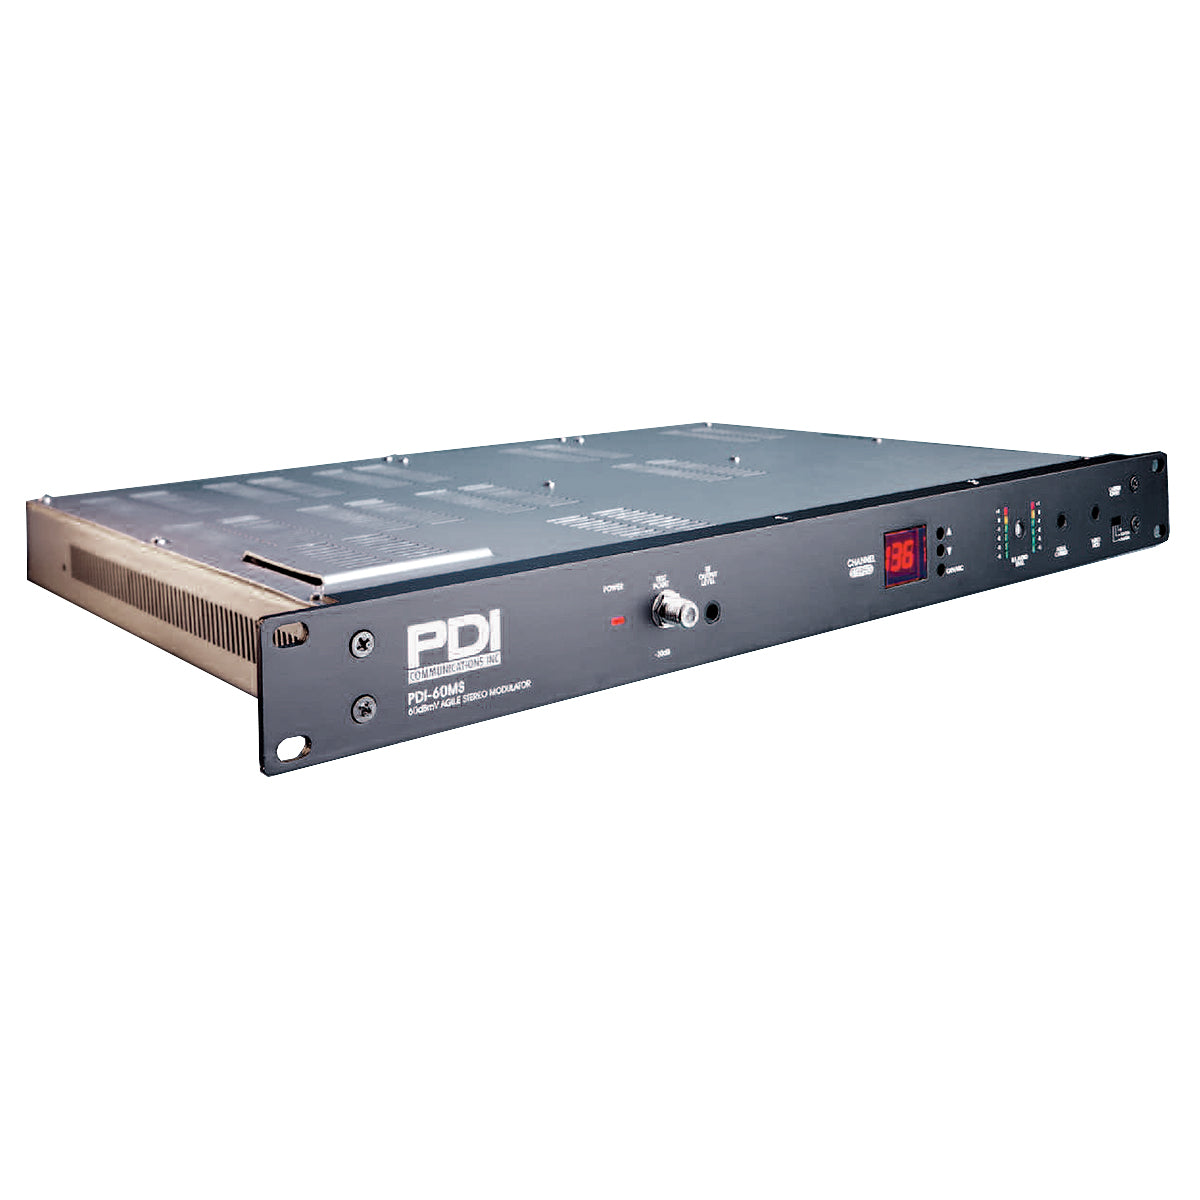 PDI-60MS-SAP 860MHz SAW Filtered Triple IF Loop Through Frequency Agile Stereo Modulator With Secondary Audio Programming (SAP)